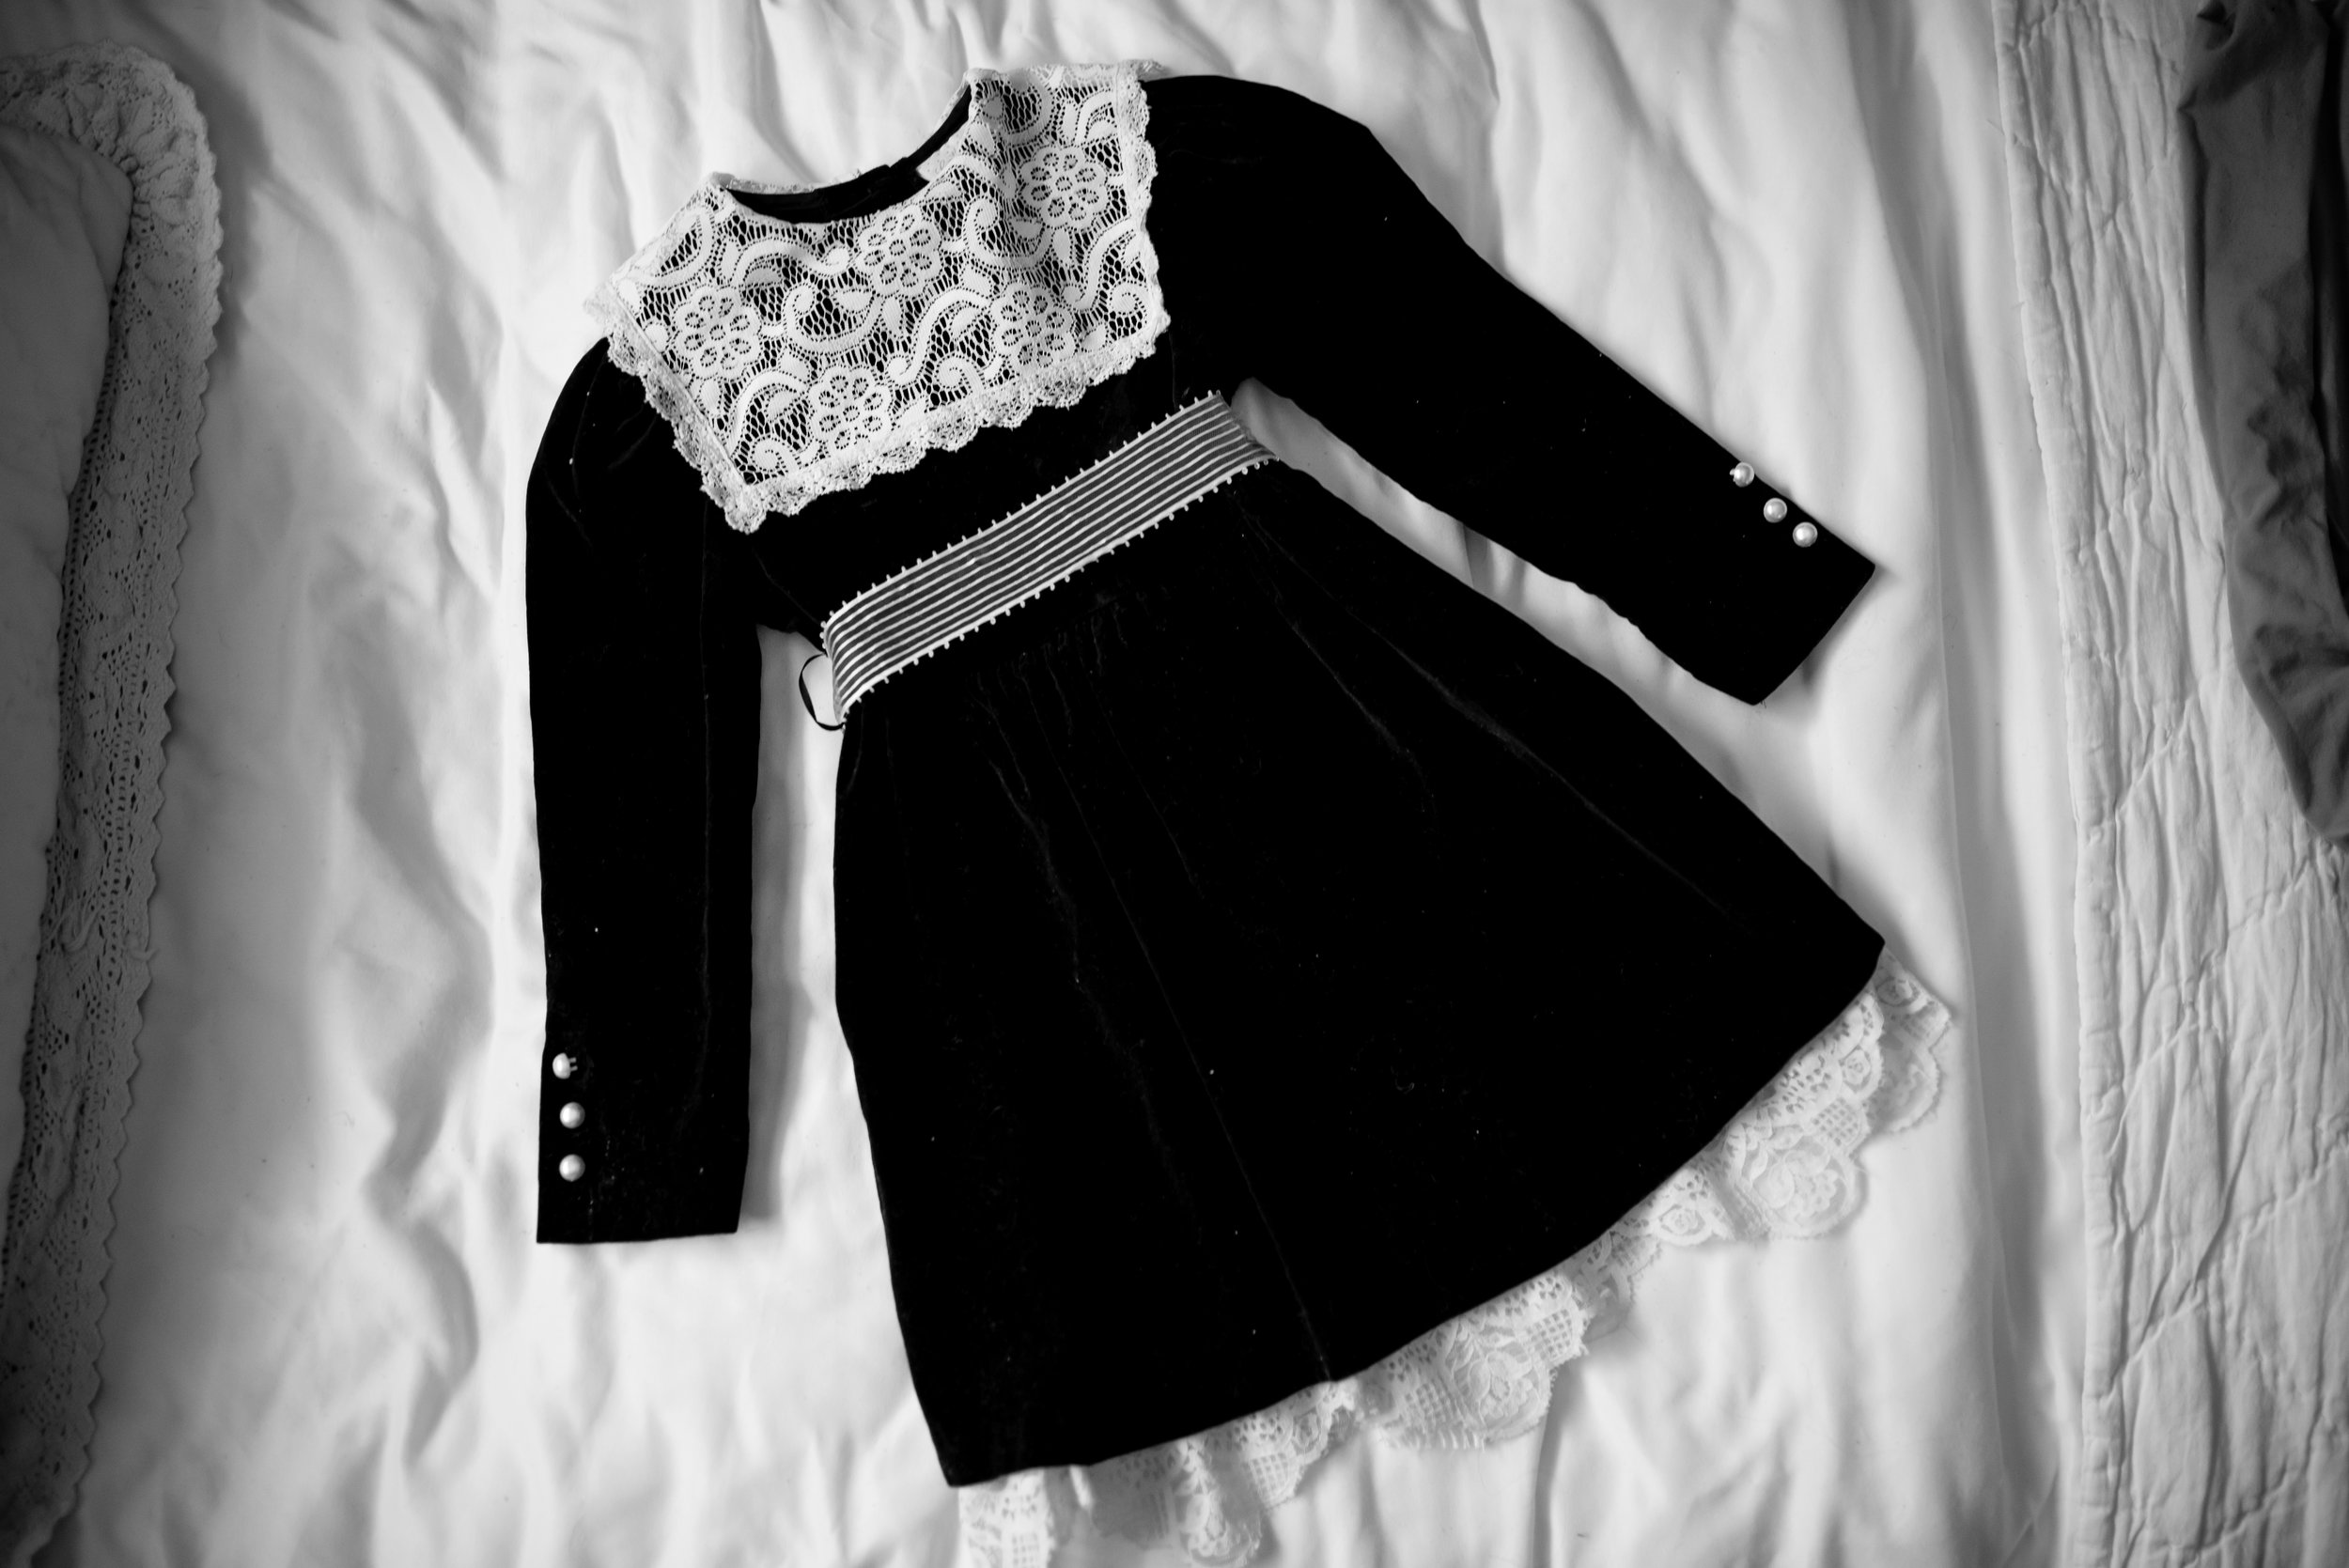 Black and white lace dress on bed